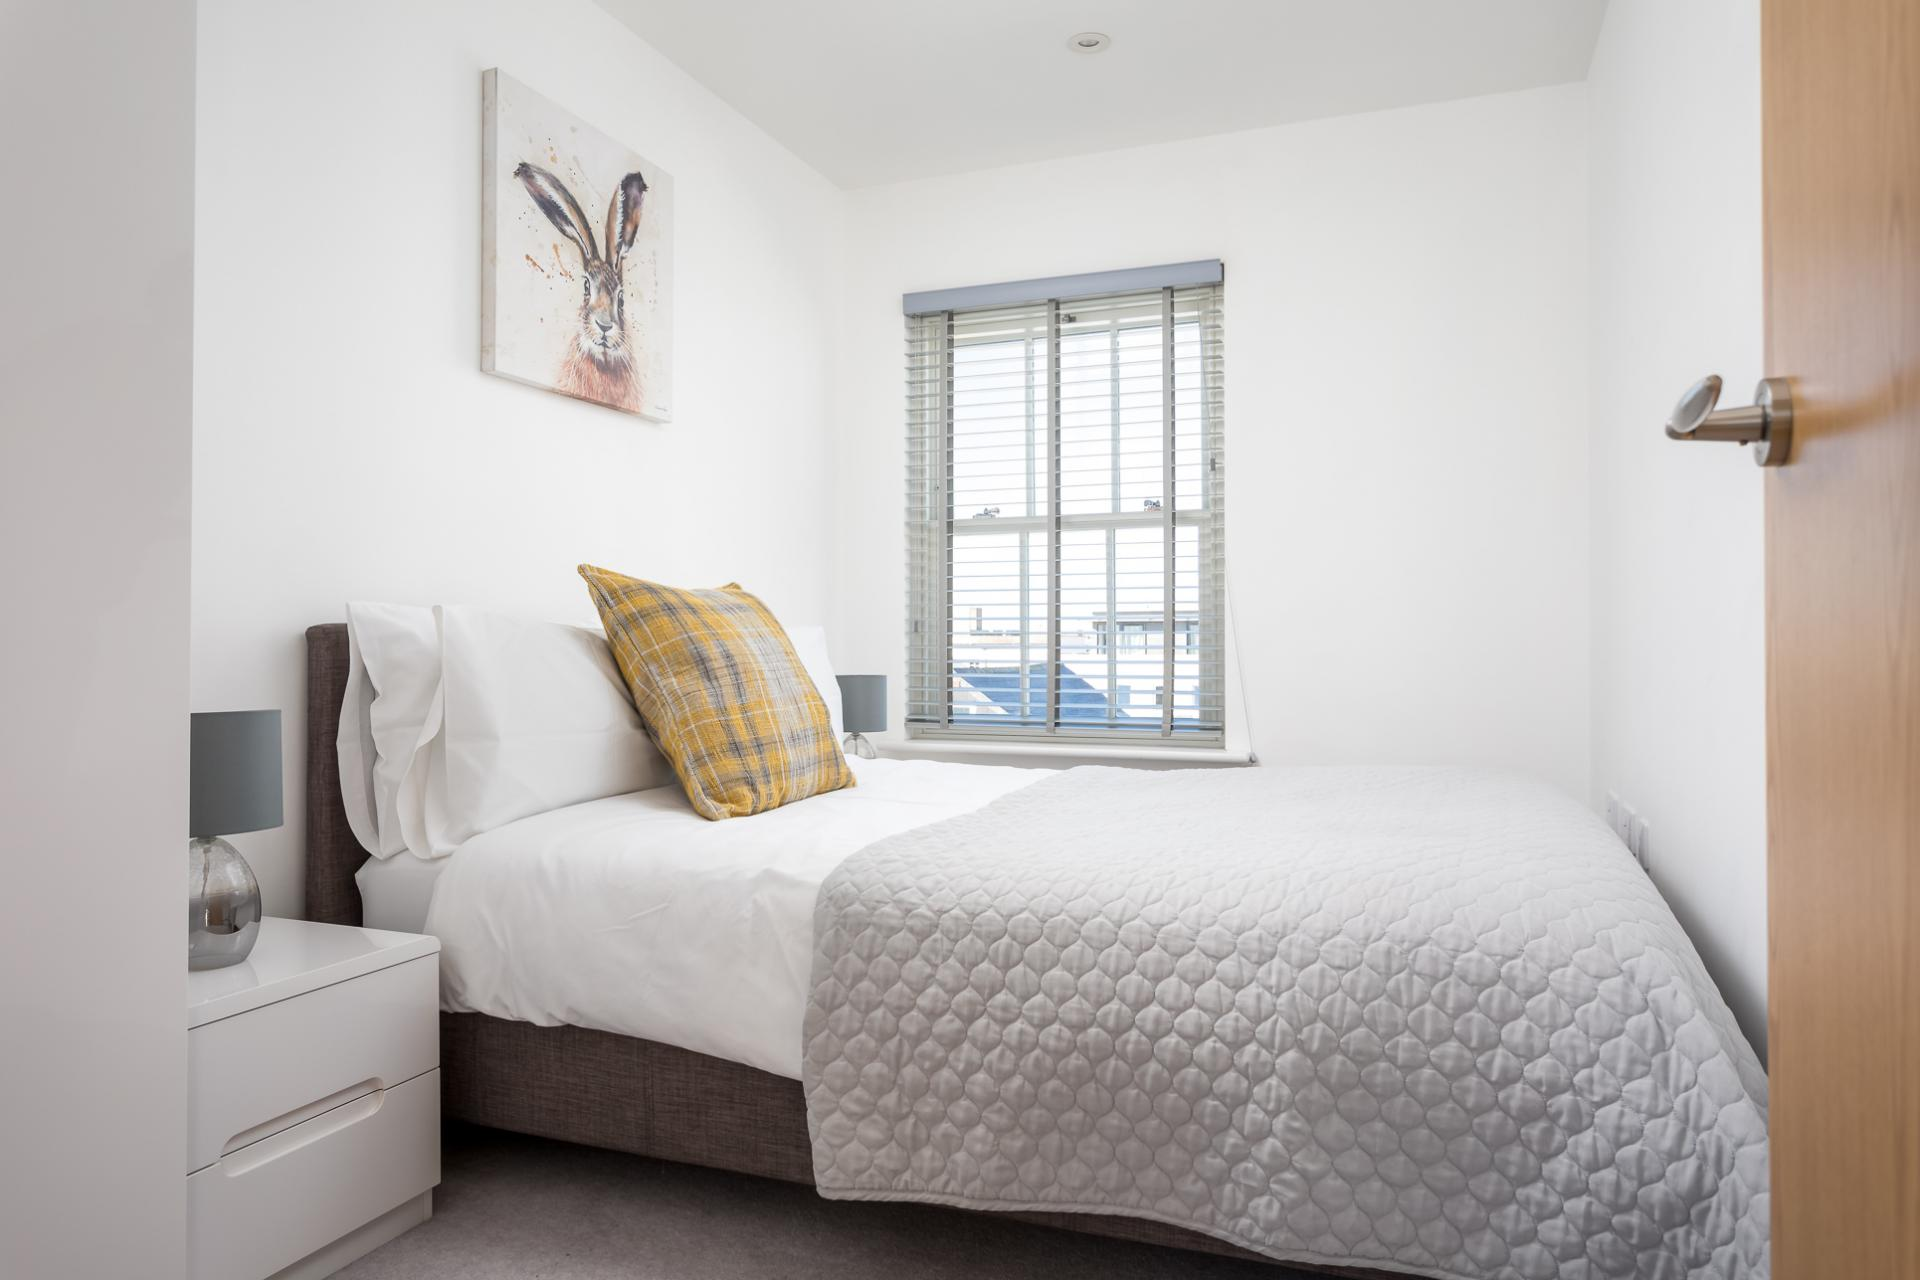 Bed at Prince Regent Mews Apartment